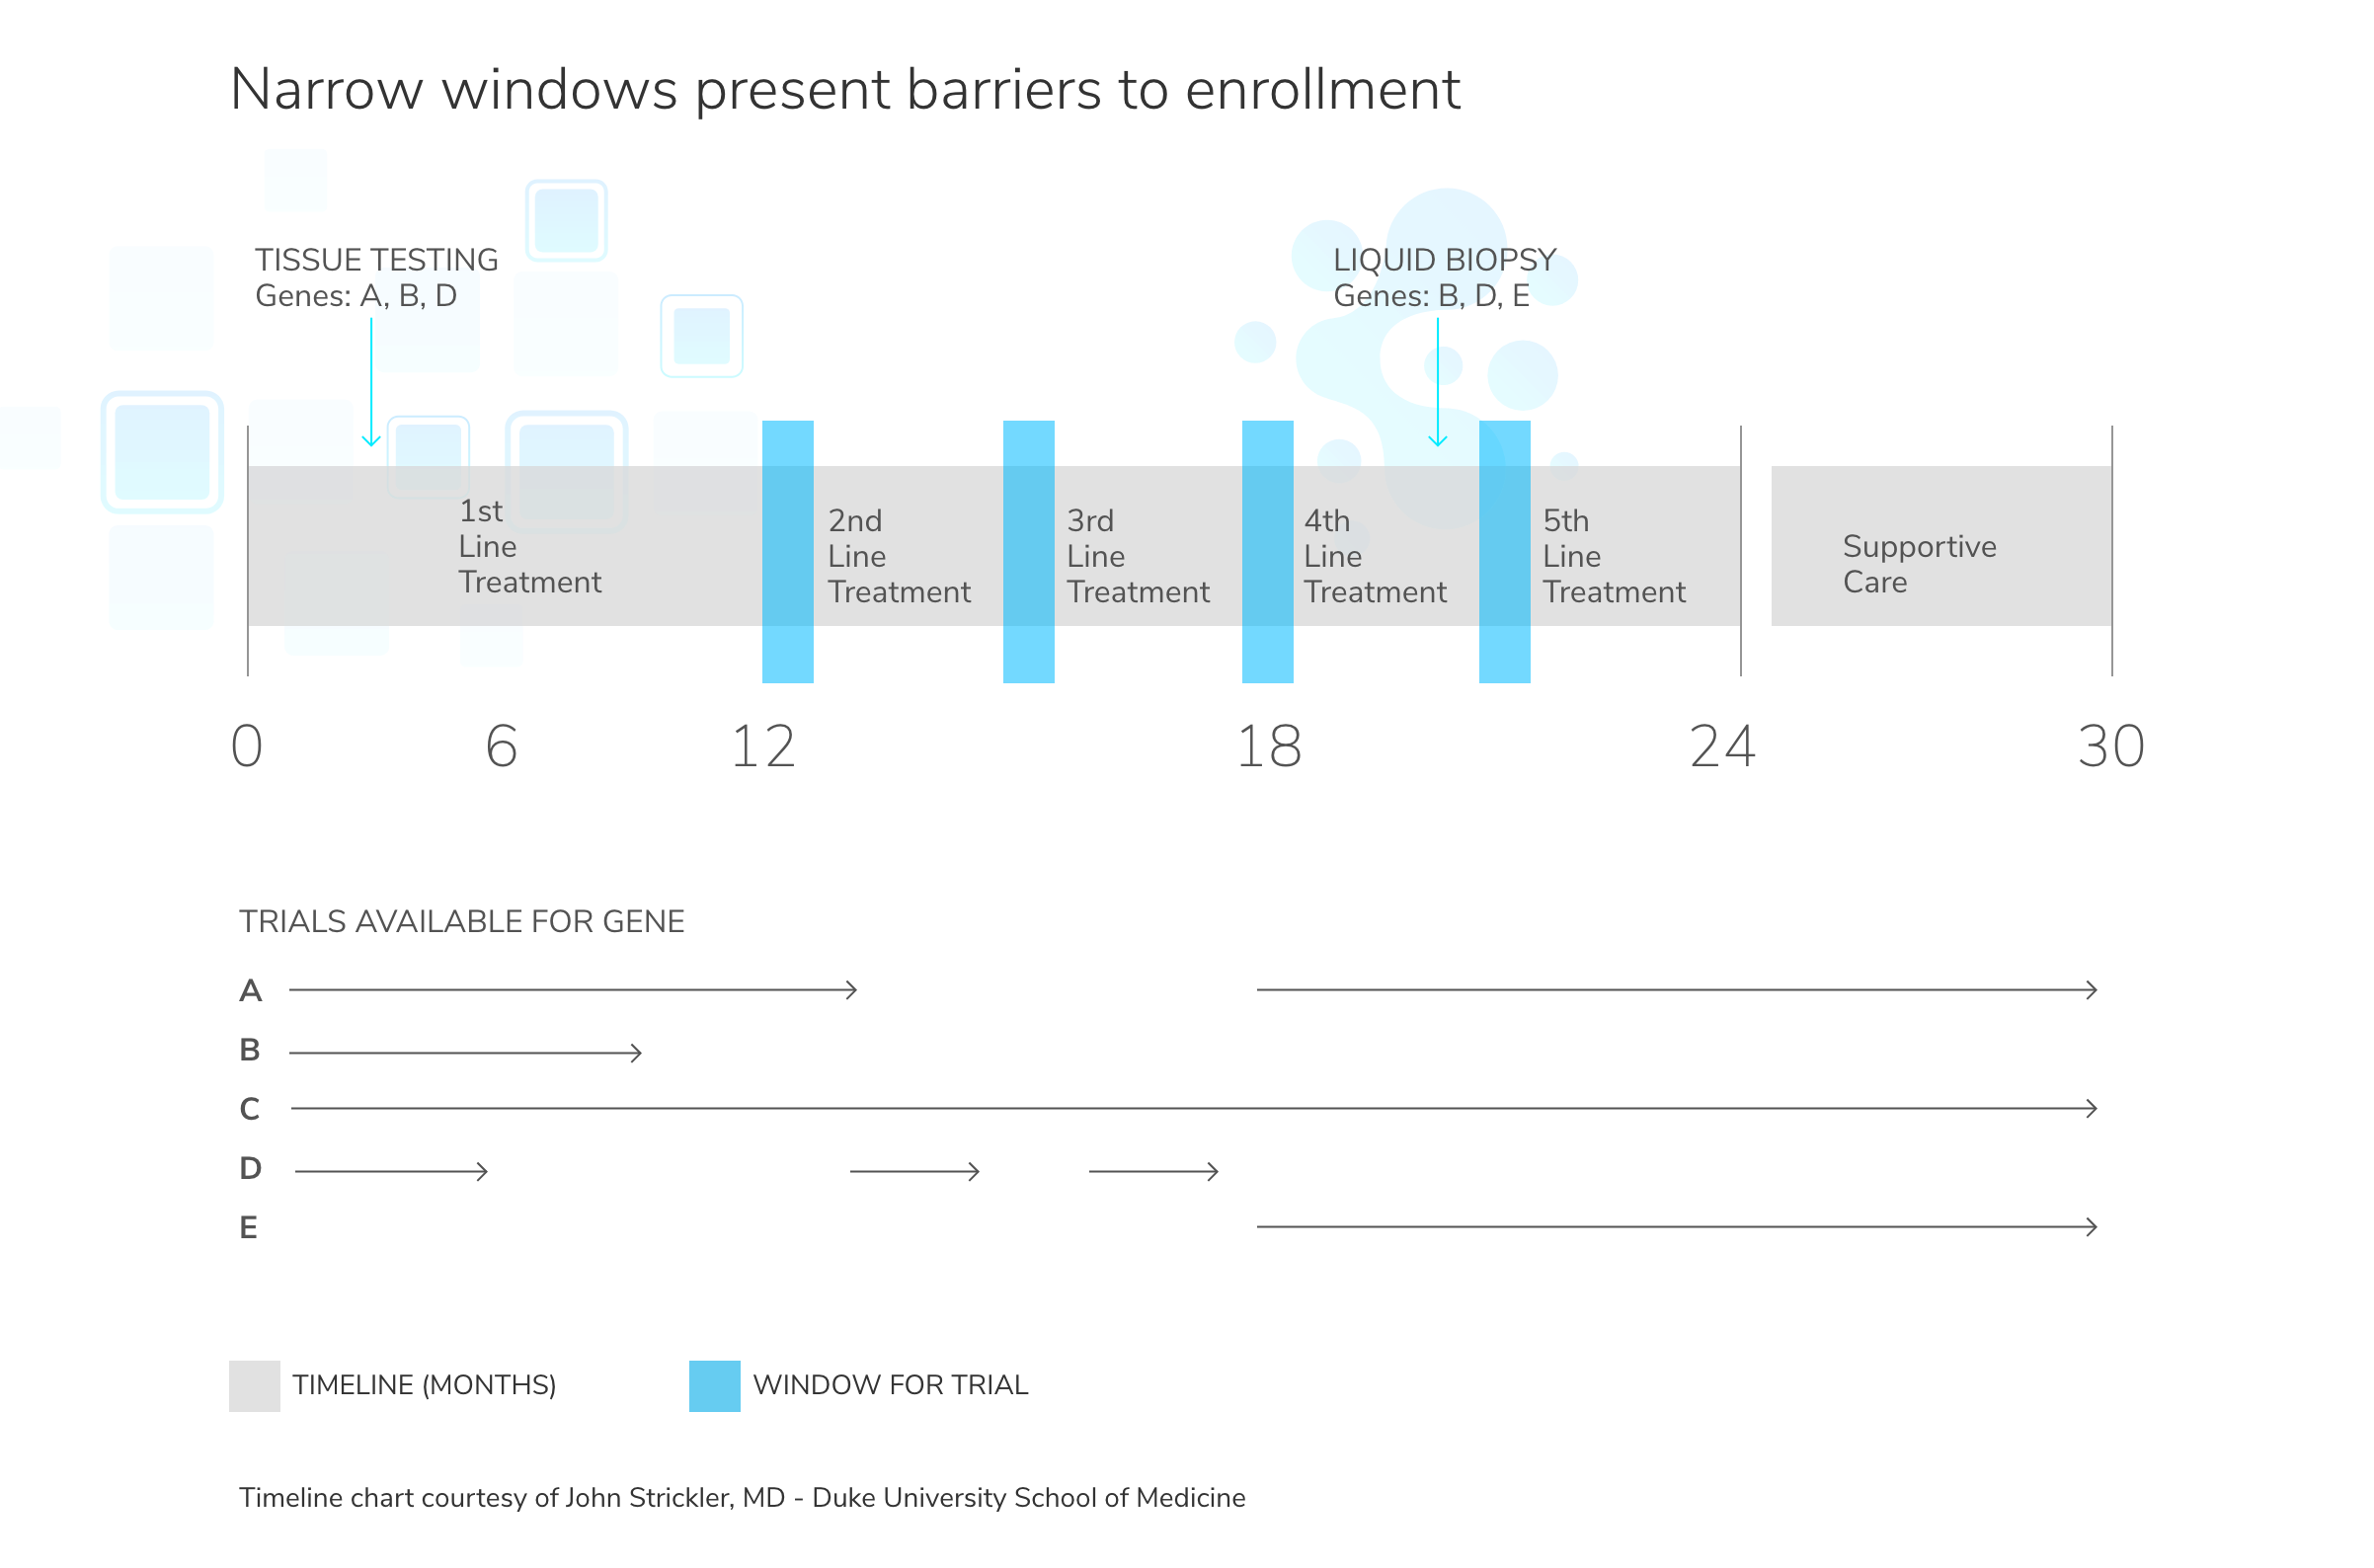 bioPharma_timeline_narrowWindows@2x